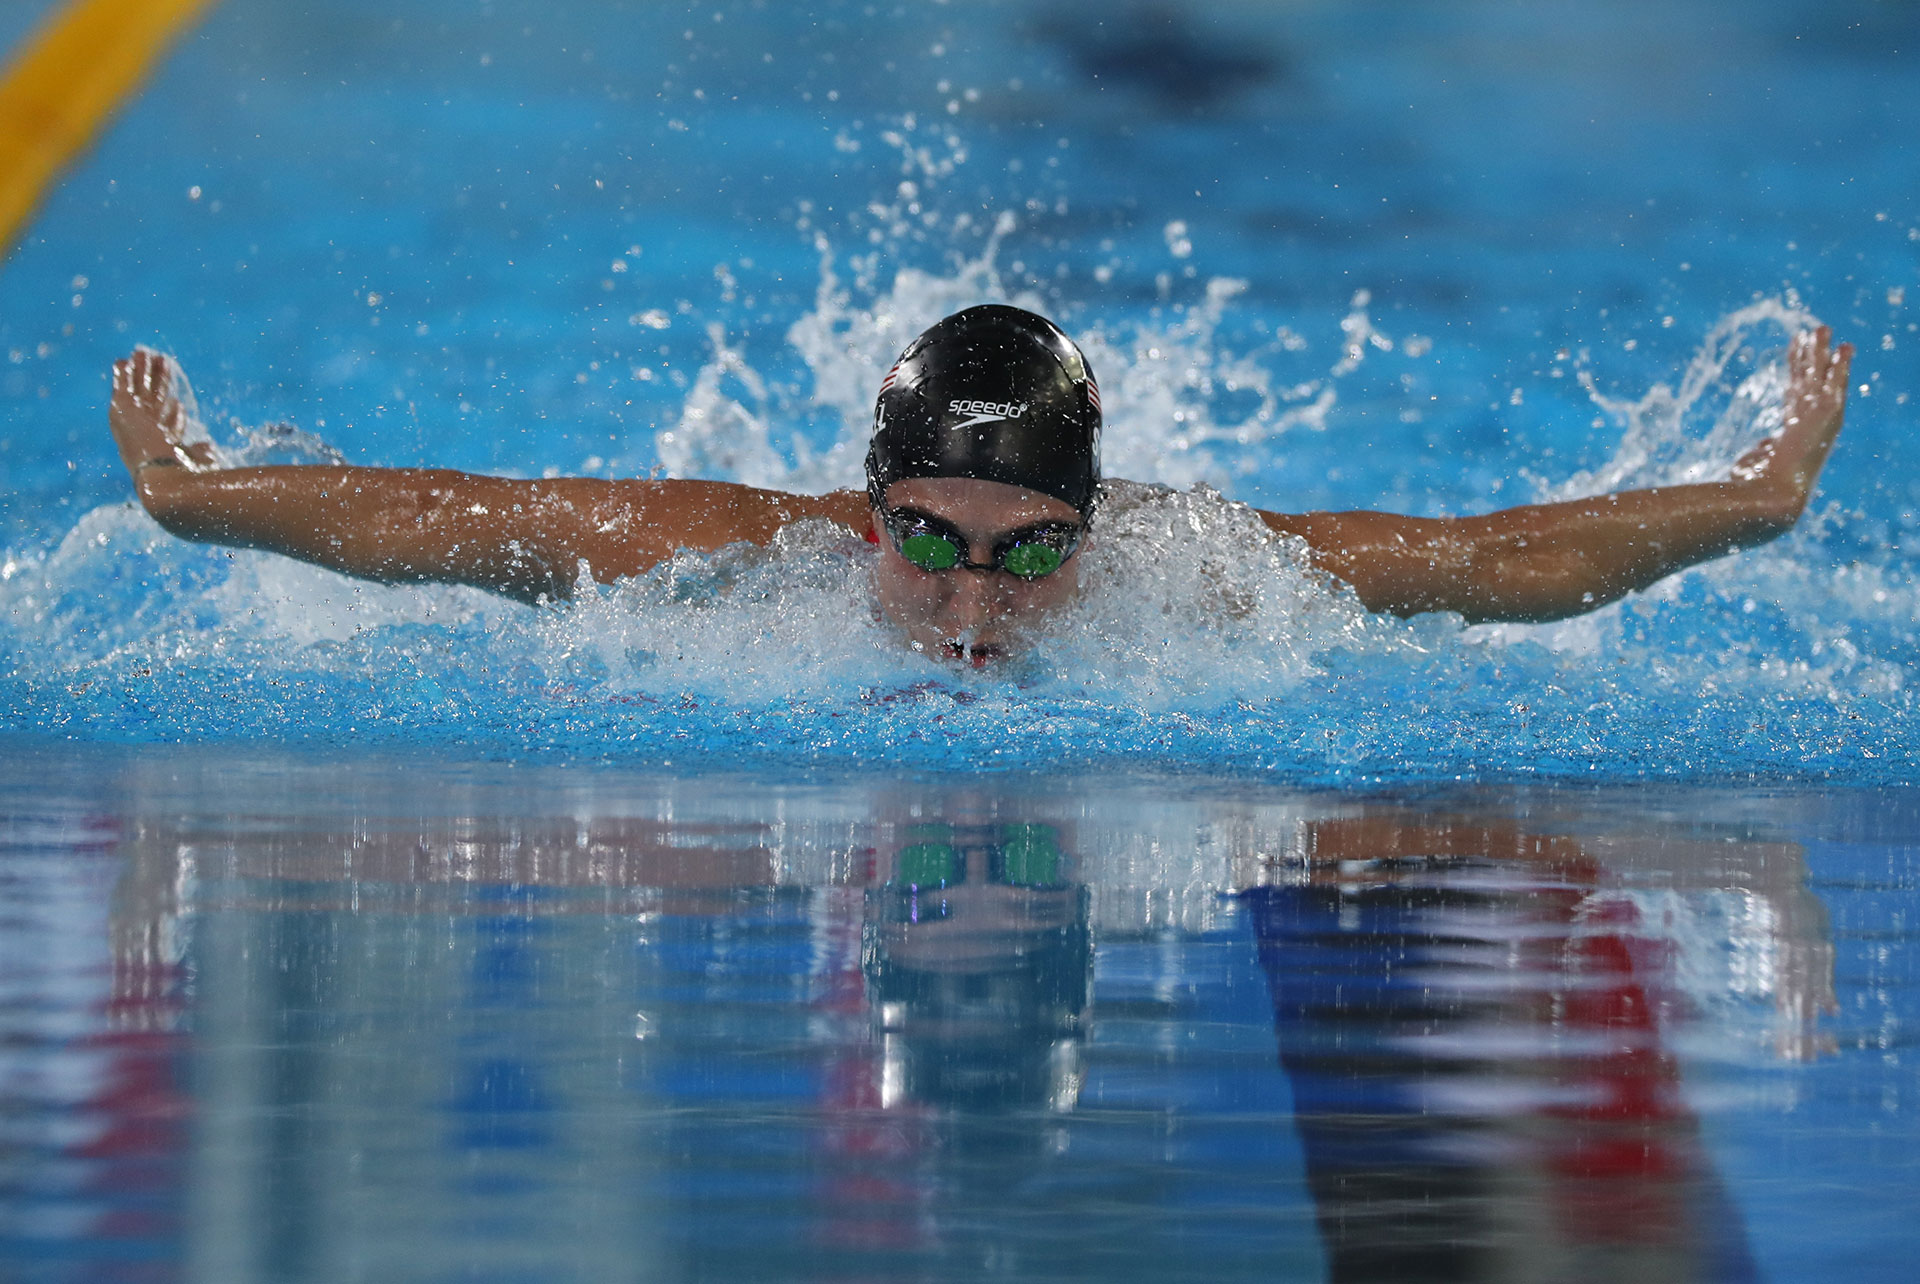 Swimming  XVIII Pan American Games - Lima 2019 - Women's 200m Individual Medley - Aquatic Center, Lima, Peru - August 10, 2019. Meghan Small of the U.S., in action. REUTERS/Sergio Moraes